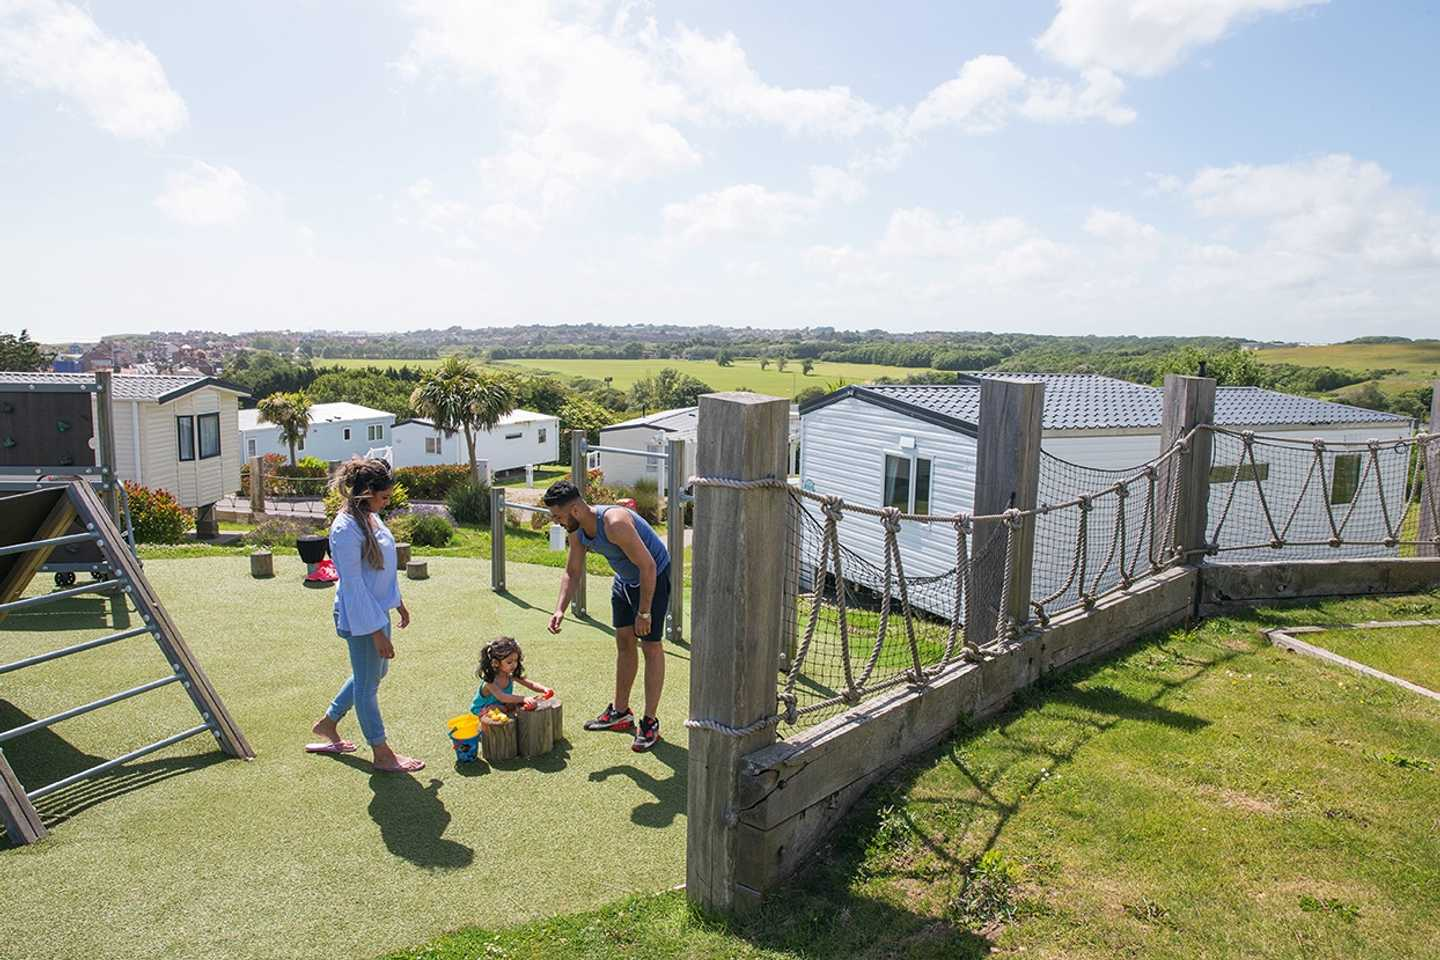 Family fun in the outdoor play area